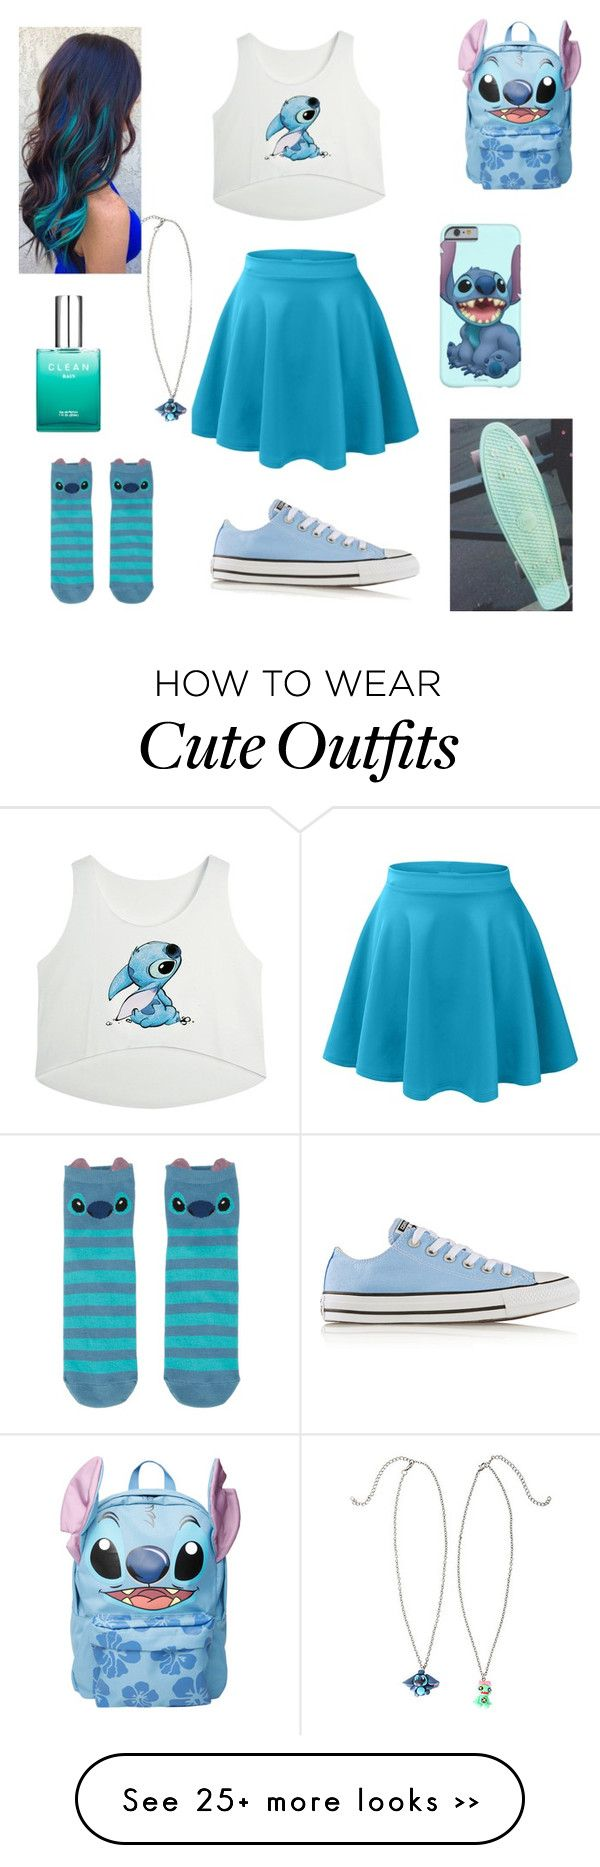 """Stitch Outfit"" by xxsondraxx on Polyvore featuring Converse, Disney and CLEAN"